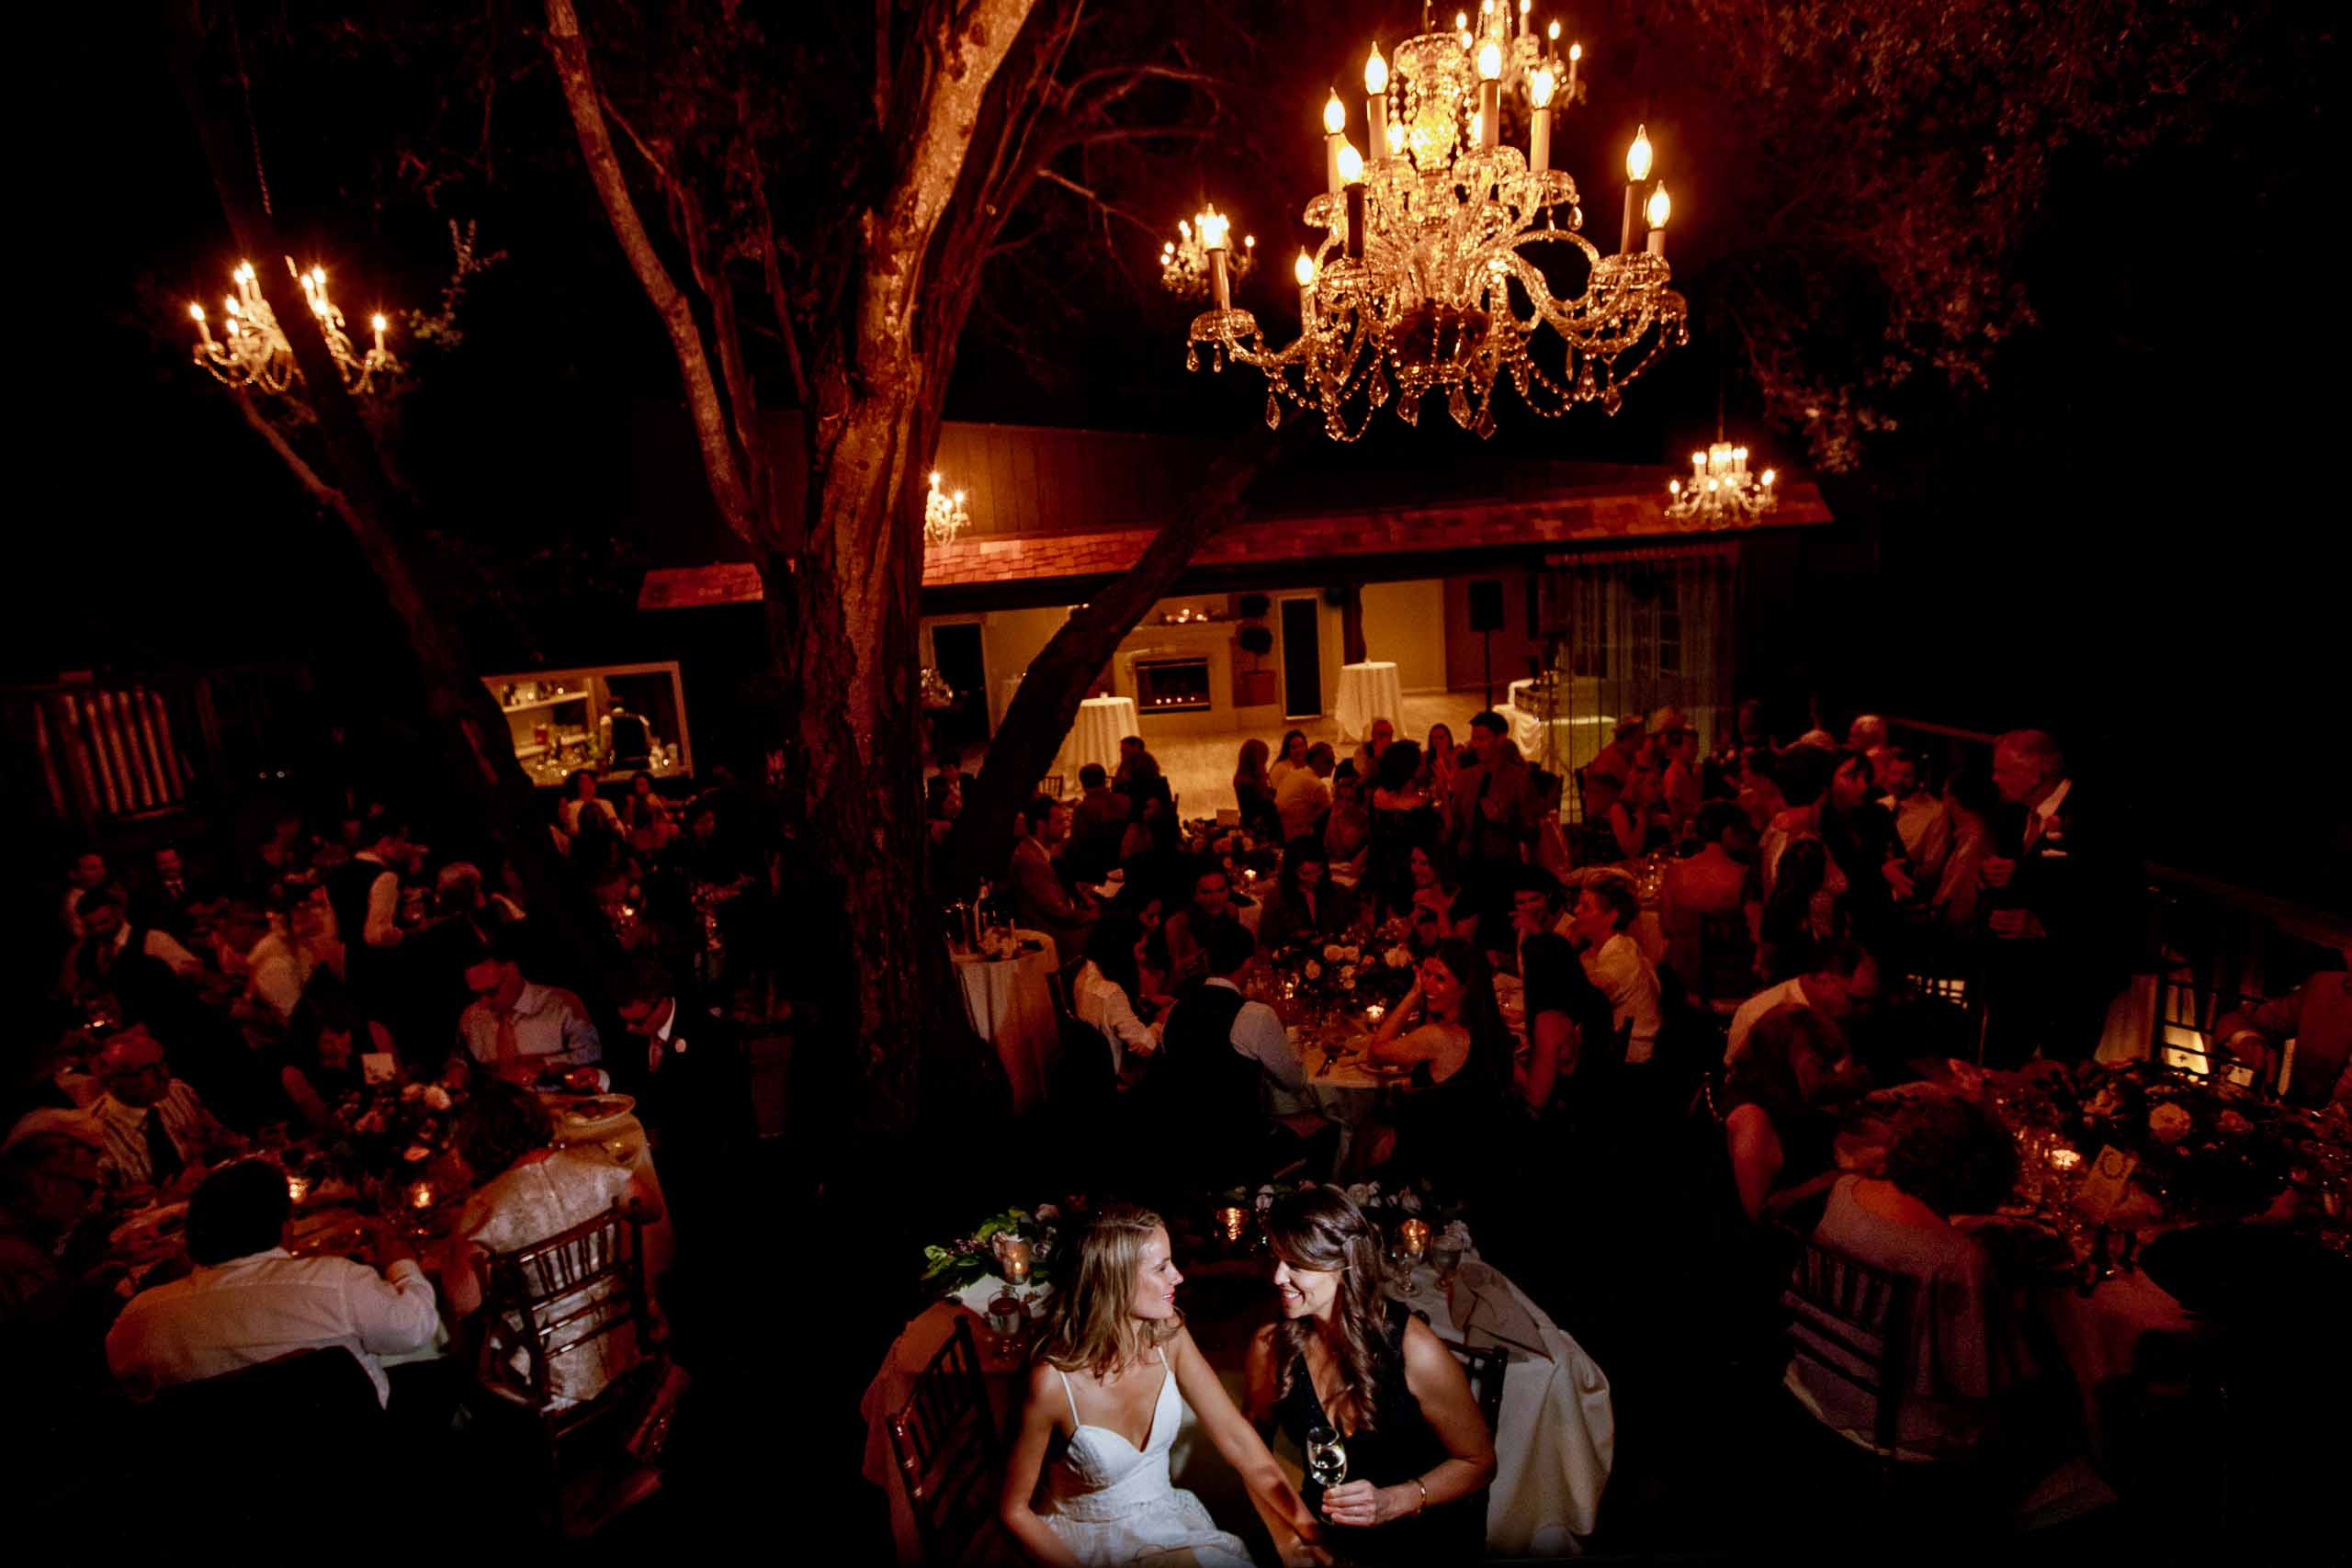 Two brides enjoying their Calamigos Ranch Wedding reception under candle light surrounded by friends and family in Malibu, California